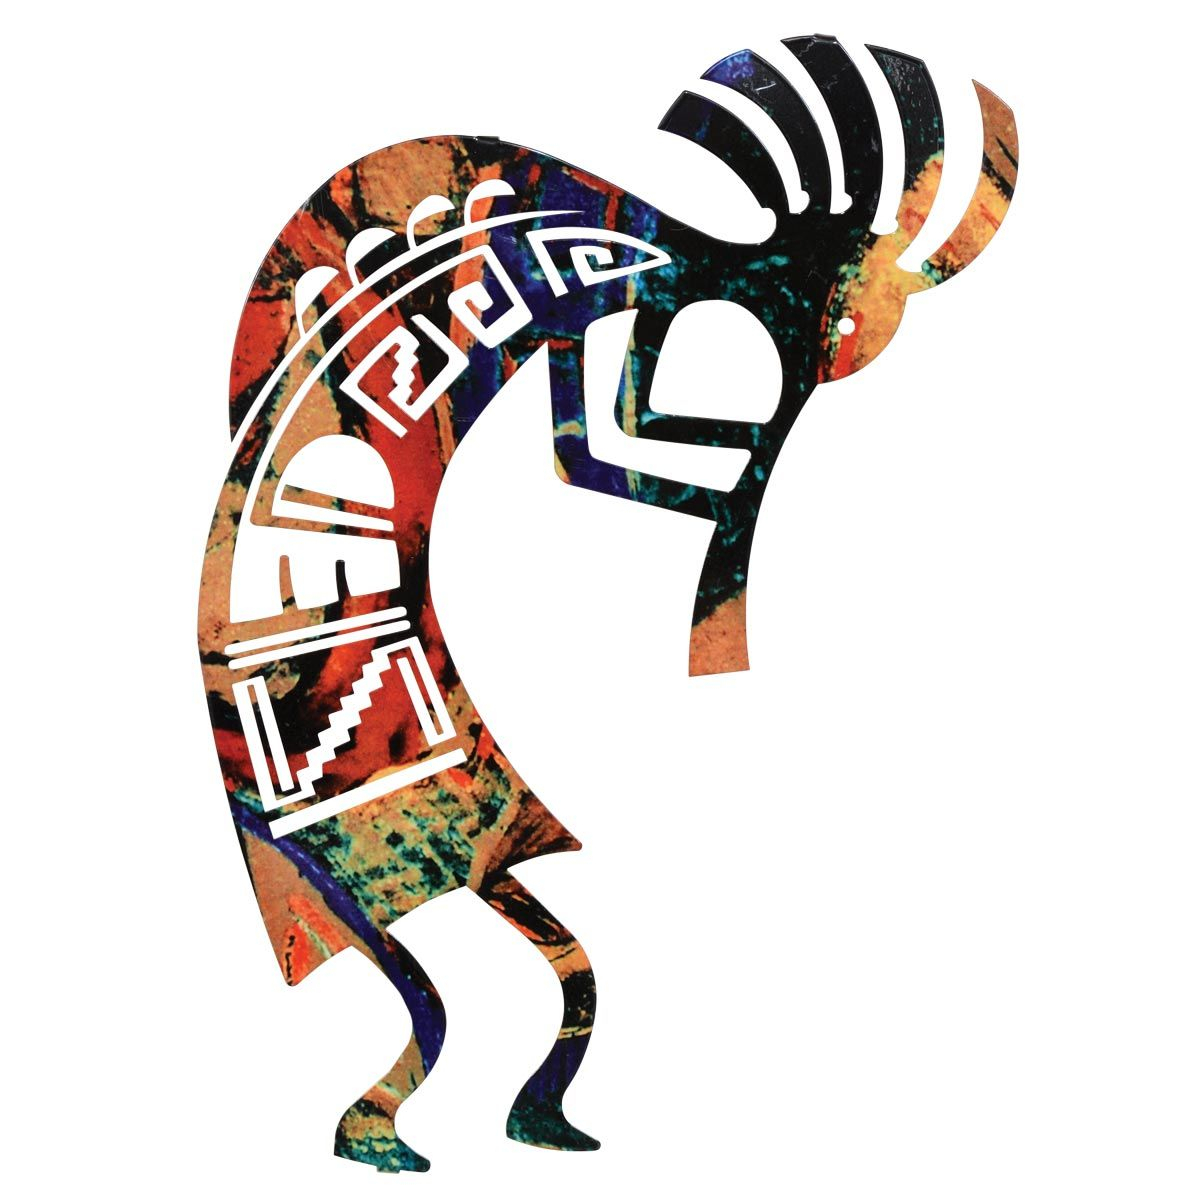 Kokopelli Dance Metal Wall Art   12 Inch Within Dance Of Desire Wall Decor (Photo 9 of 30)